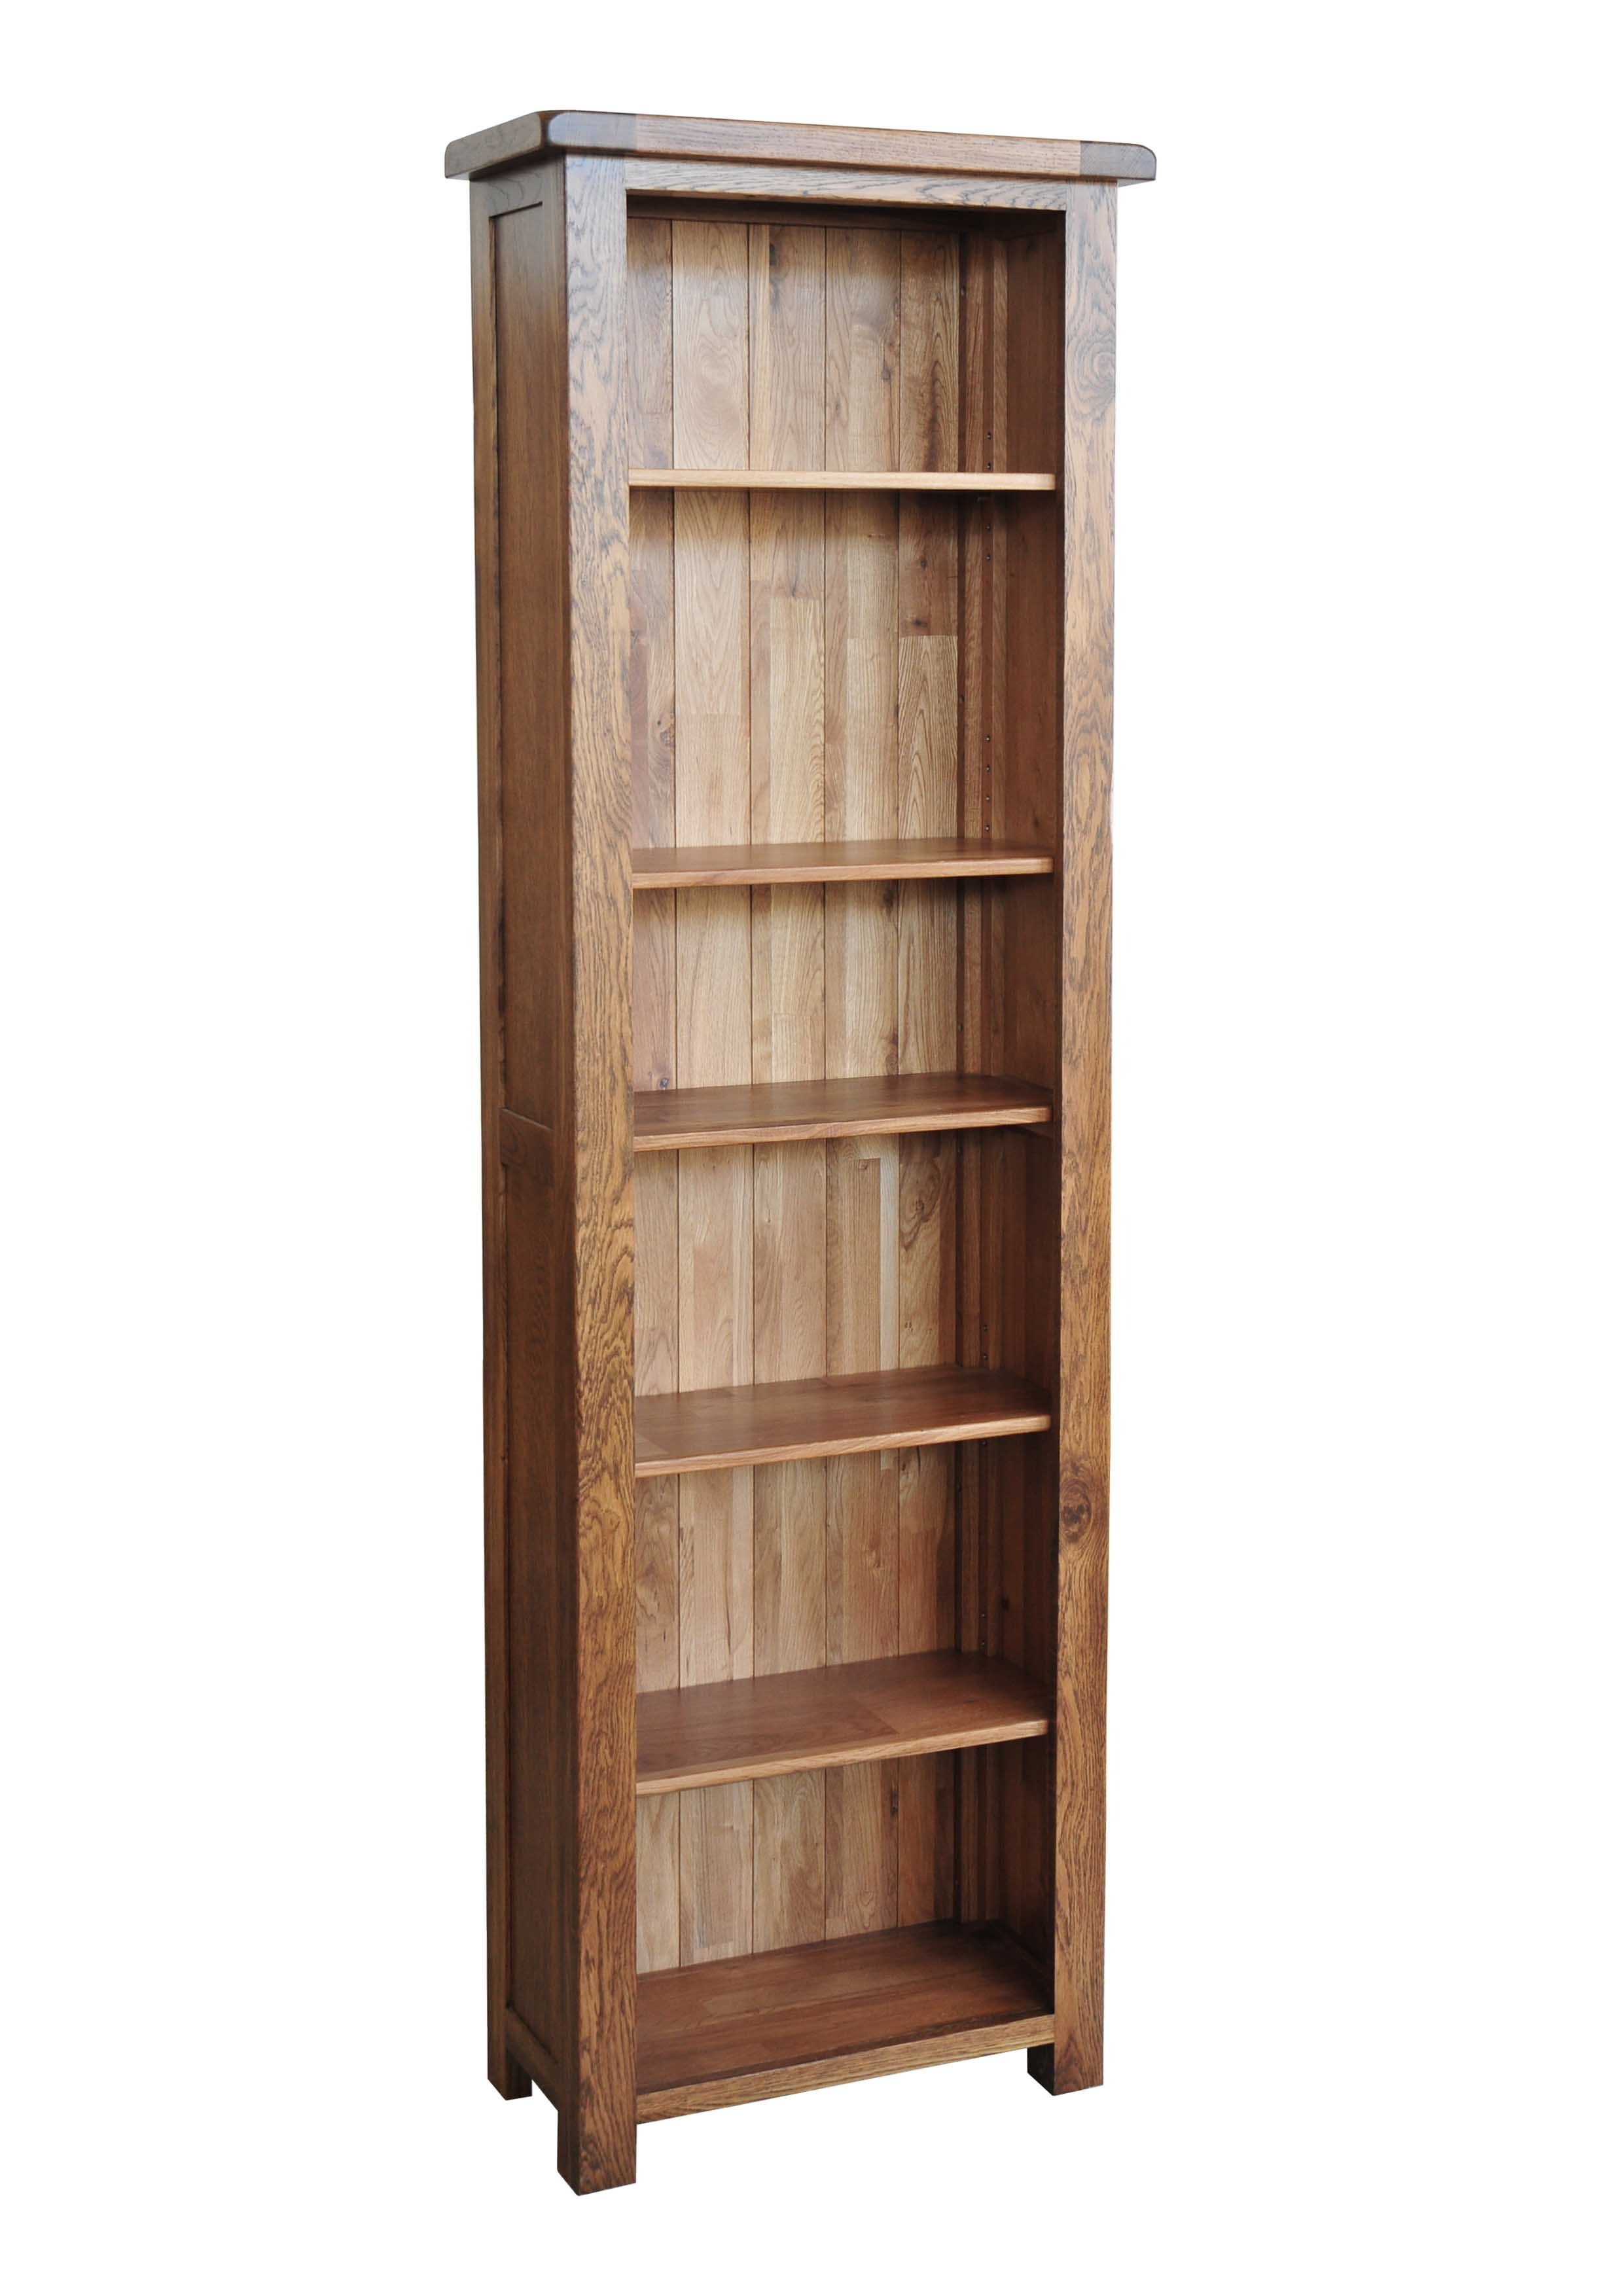 Recent Bookcases Ideas: Solid Wood Bookcases, Birch Bookcases, Unfinished Pertaining To Unfinished Wood Bookcases (View 15 of 15)